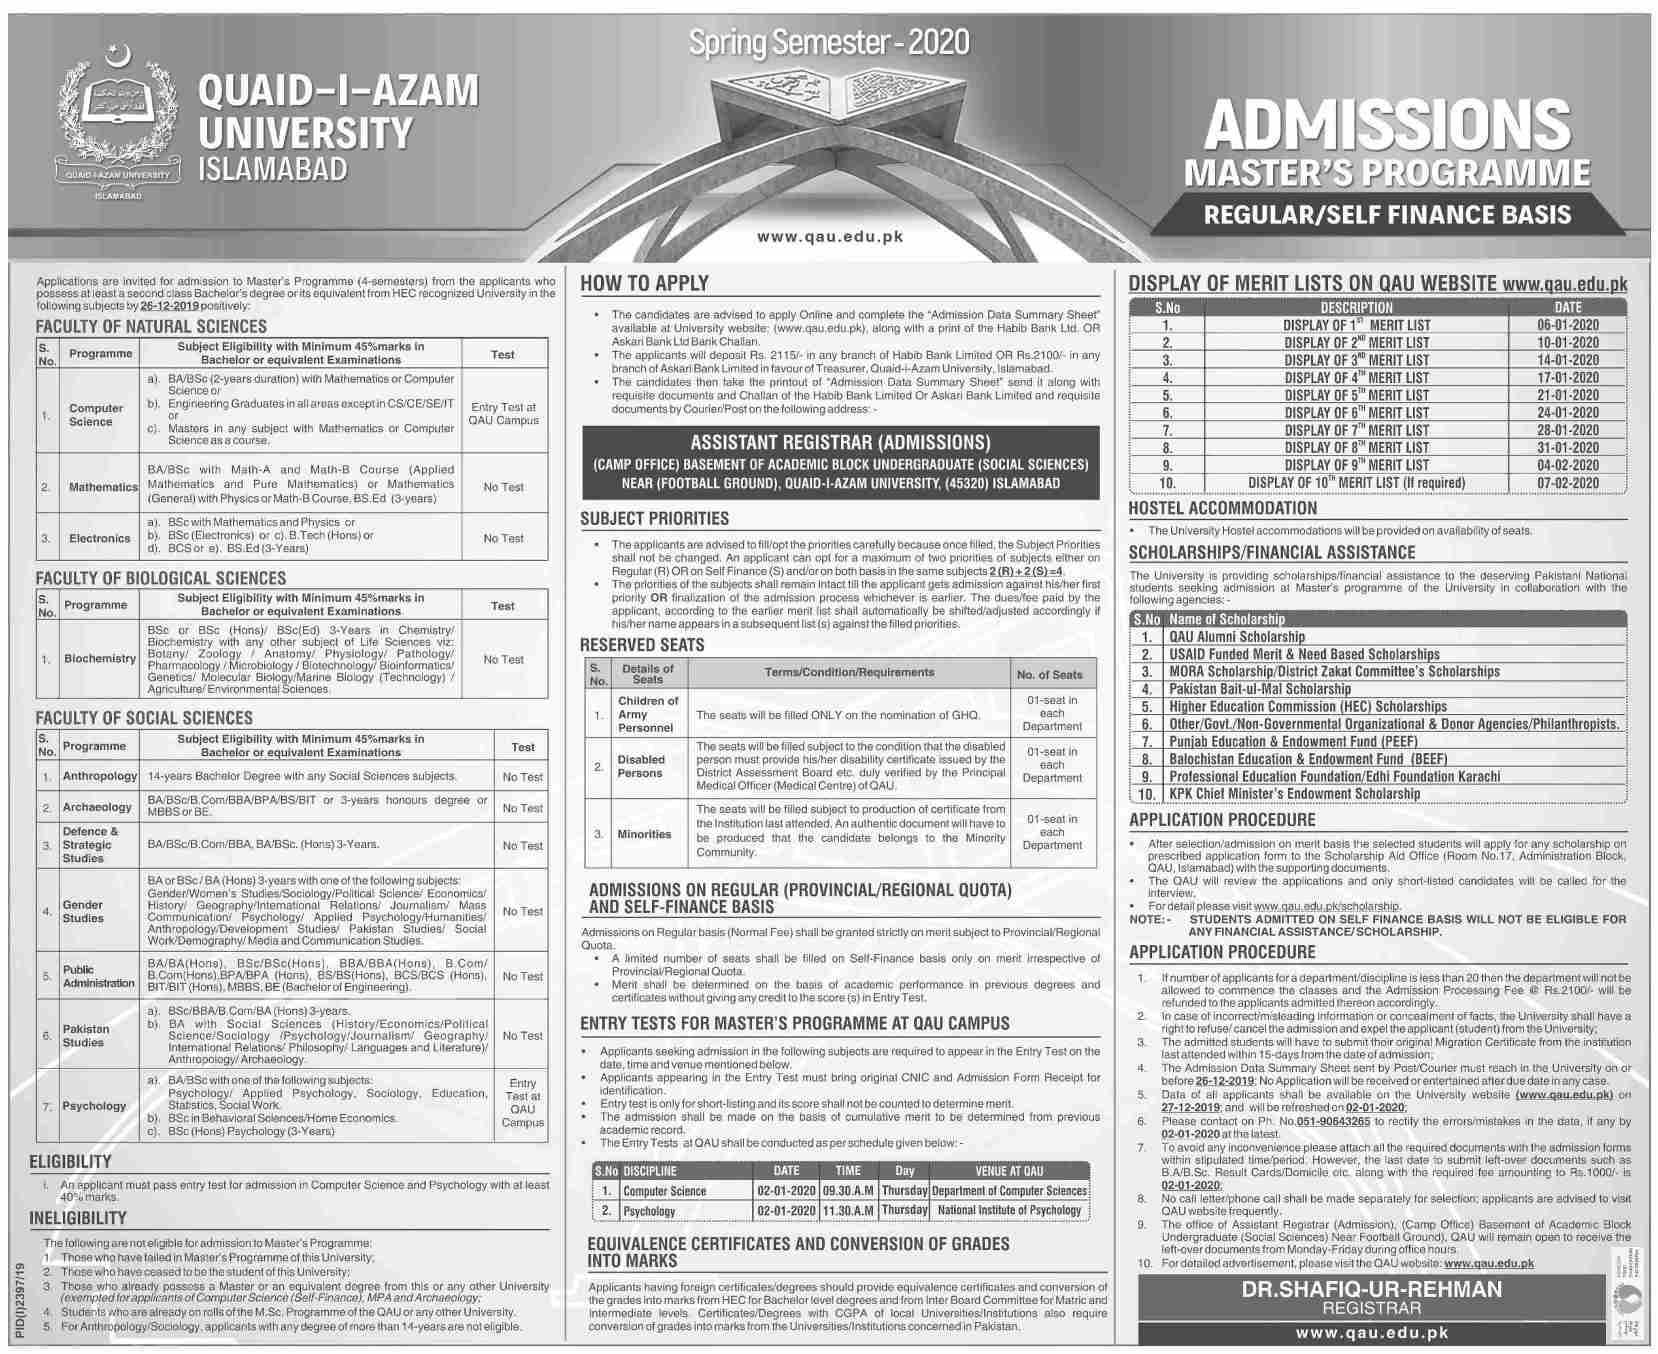 Quaid-I-Azam-University-Islamabad-Admission-2020 Qau Degree Application Form on dept chmistry, bba department, it department, university logo, islamabad logo, earth science, fee structure for bs, itt dr names, faculty male, dr amena zubari, closing merit, islamabad round area, faculty female,